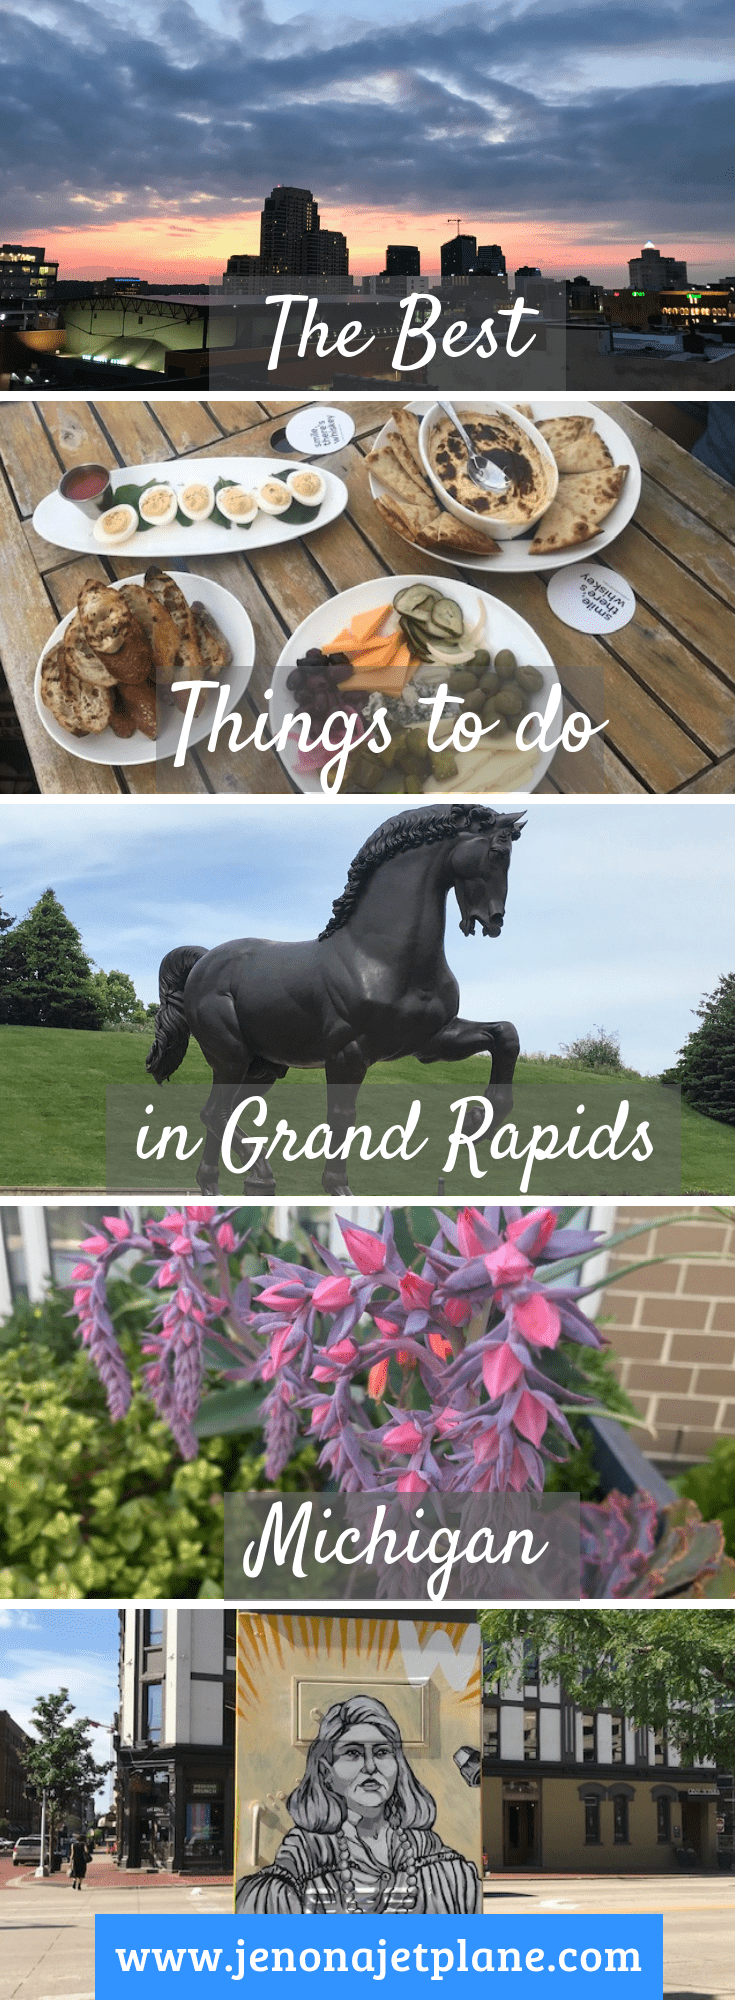 Looking for the best things to do in Grand Rapids, Michigan? From rooftop bars to street art finds, here 12 activities you can't miss! #grandrapidsMI #michigantravel #experiencegrandrapids #thingstodograndrapids